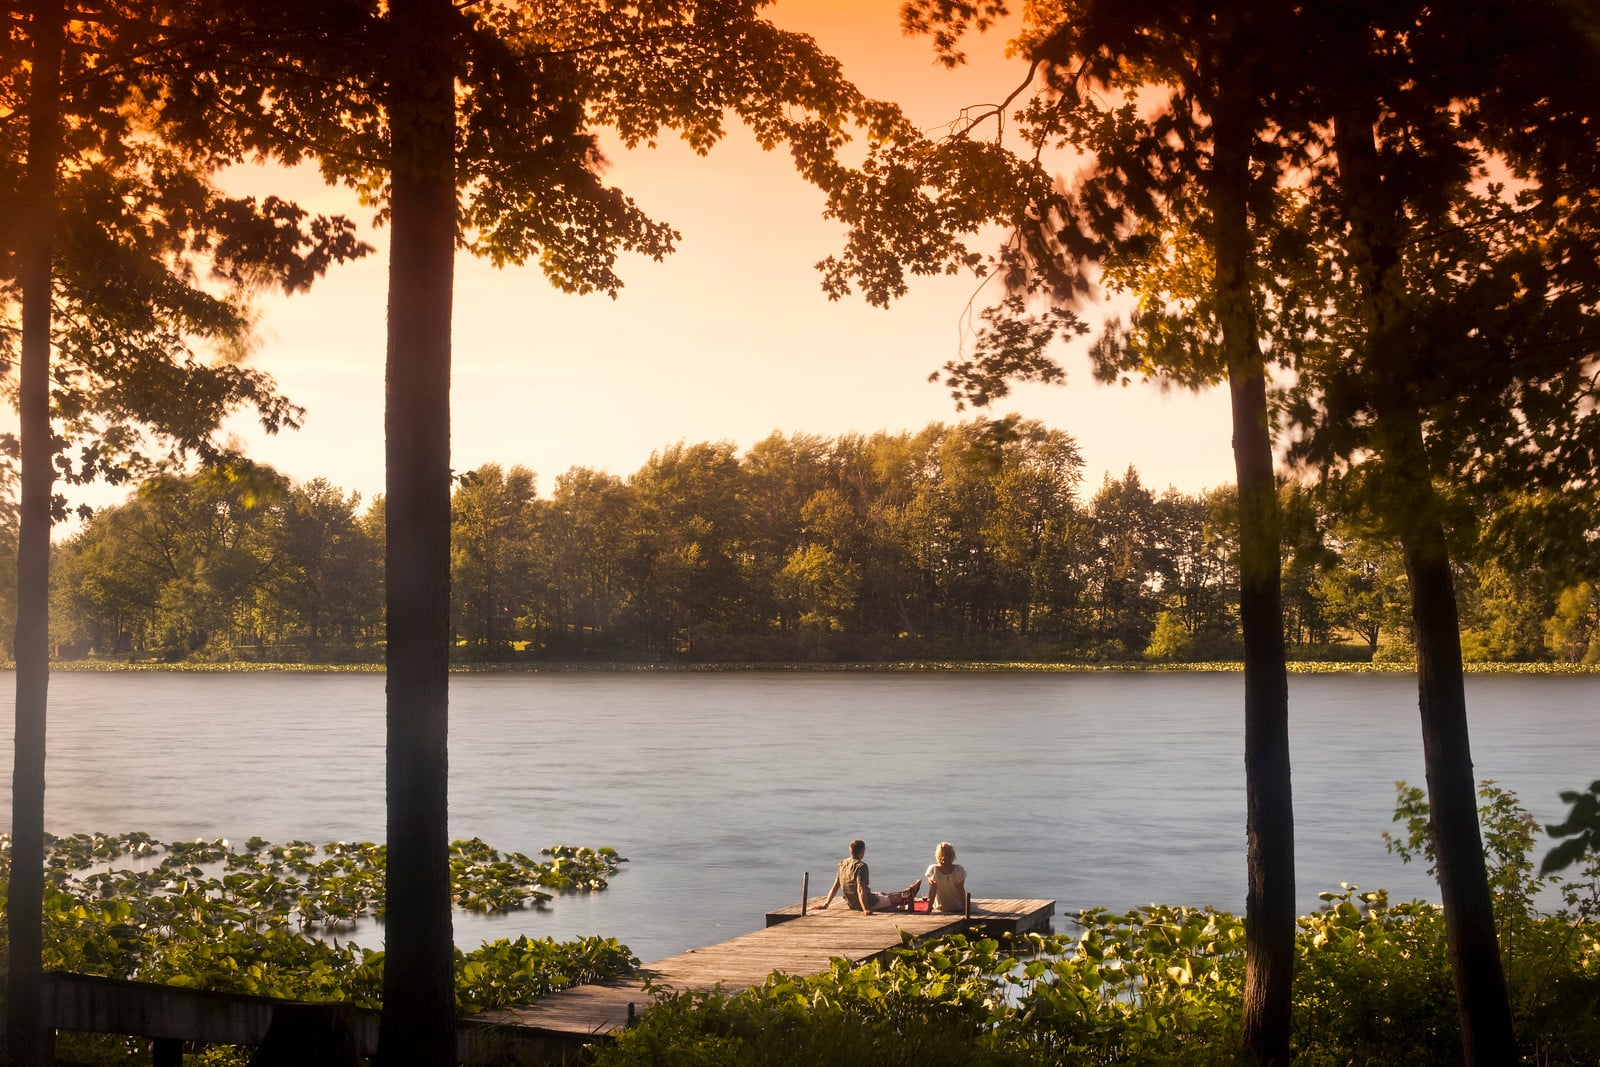 Couple sitting on the end of the dock watching the sunset over the lake